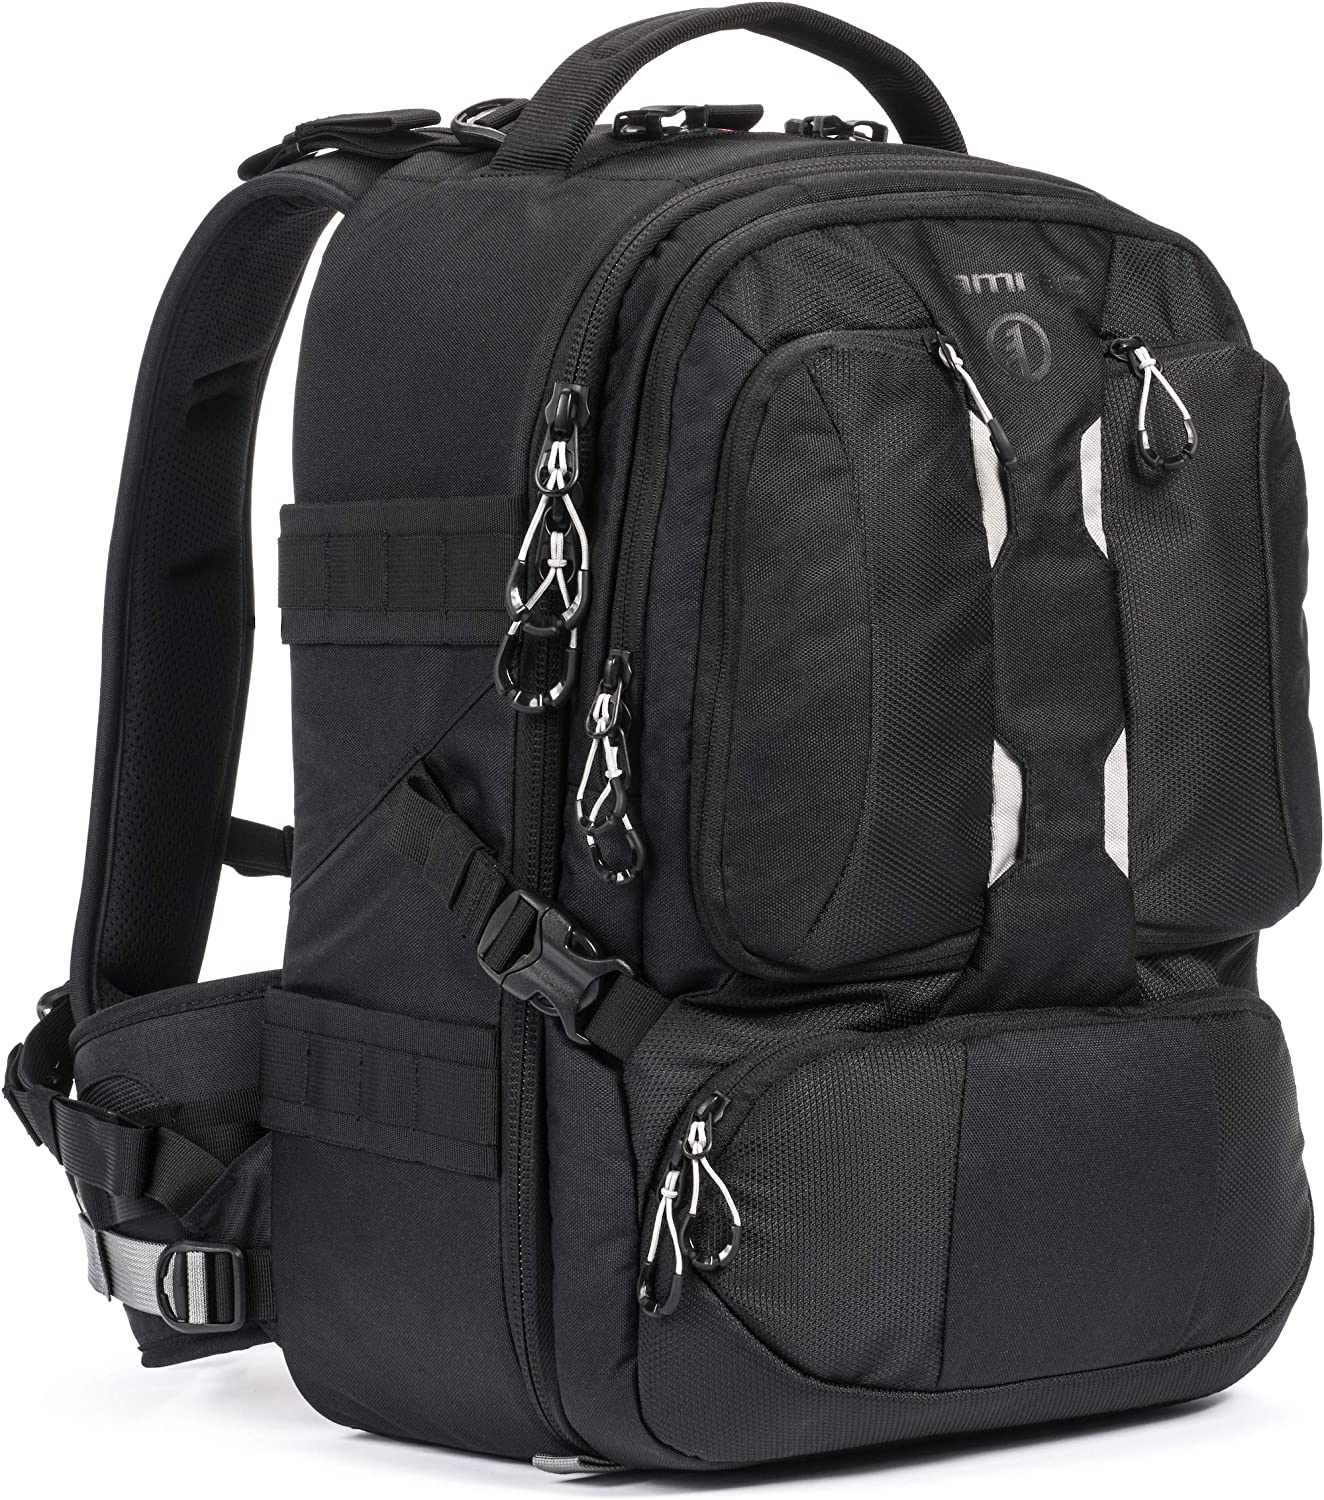 Tamrac Anvil 27 Photo Backpack with Belt